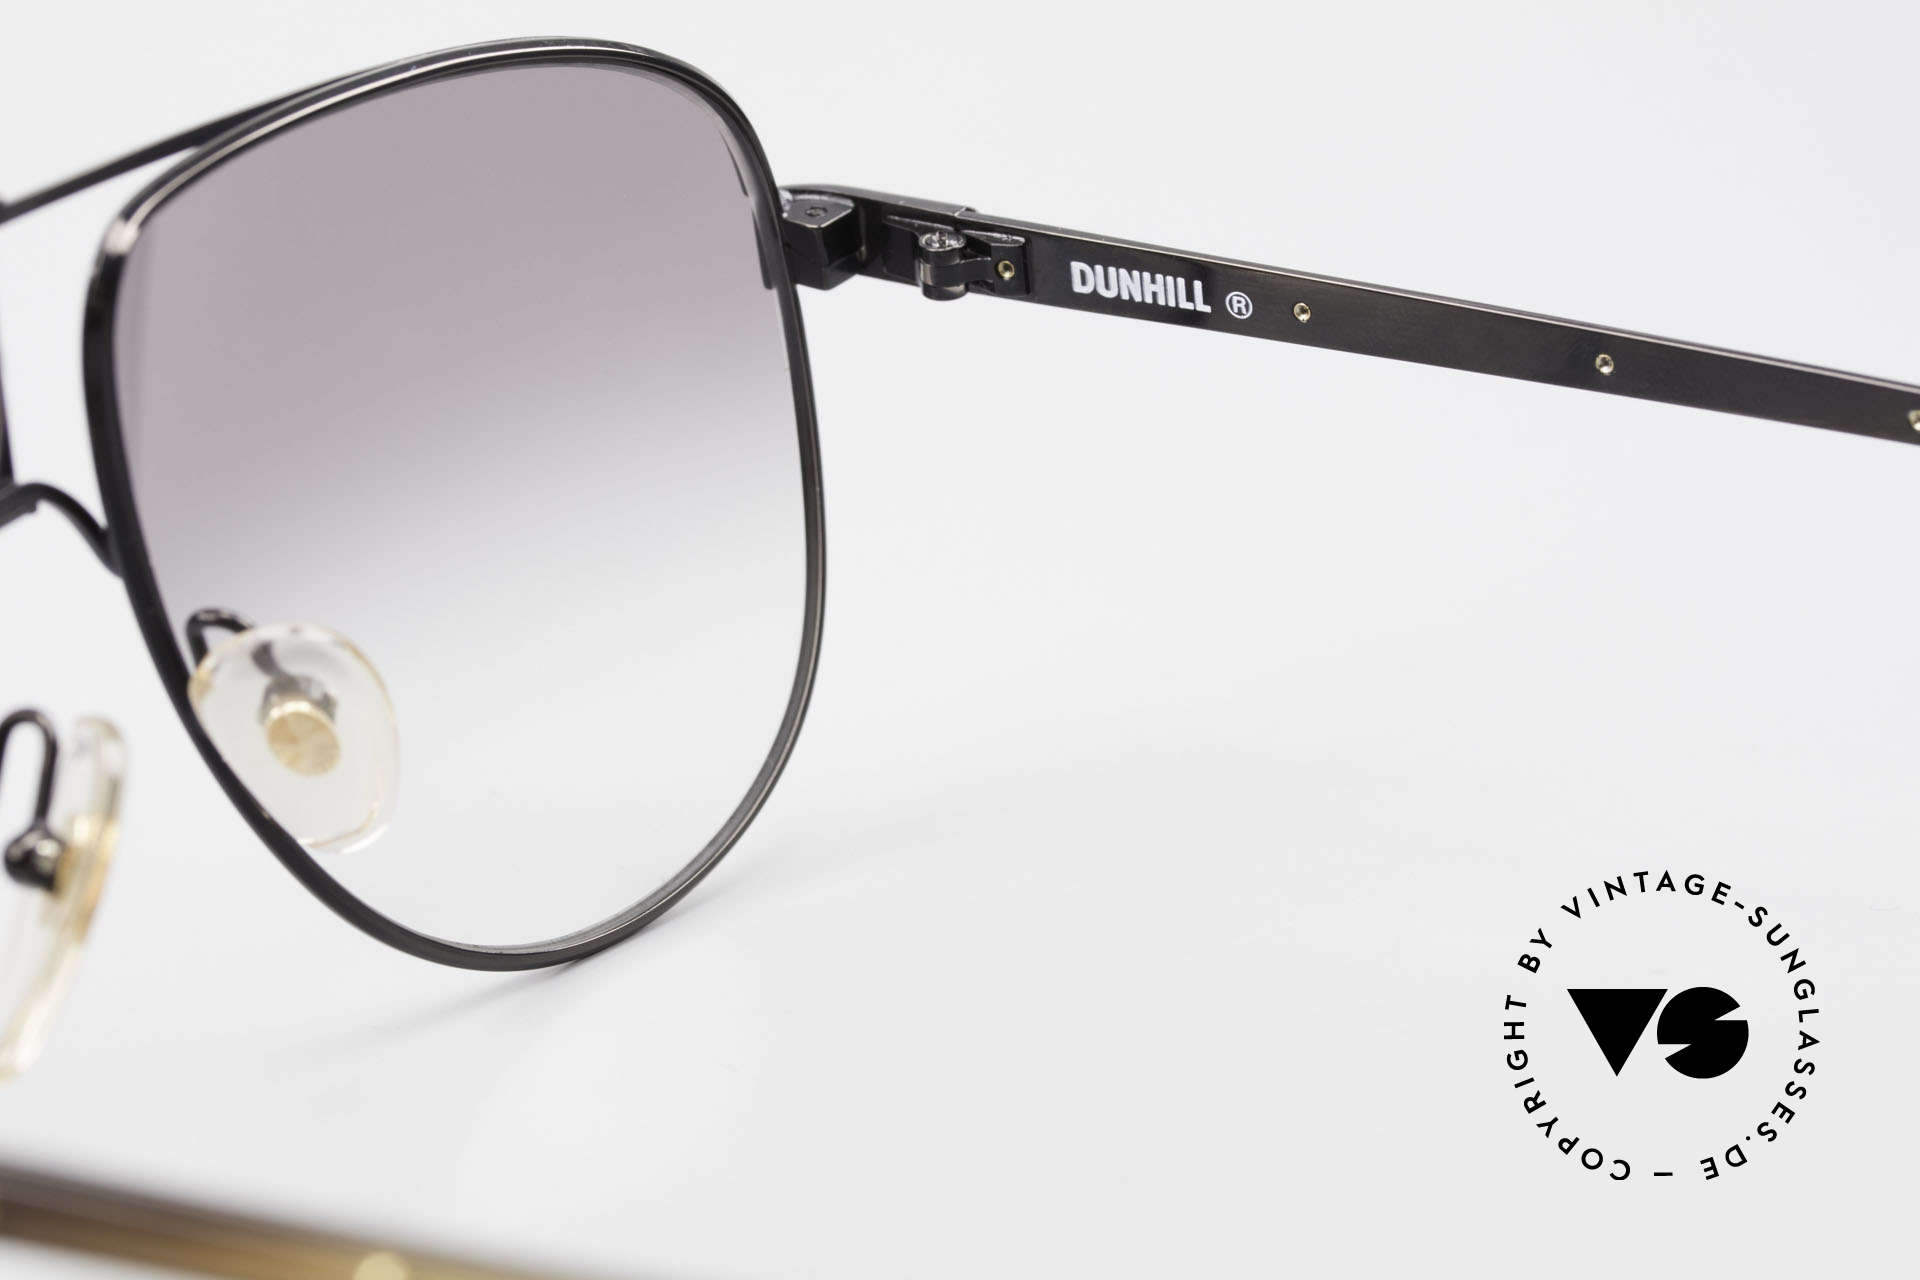 Dunhill 6043 Men's Shades With Horn Trims, NO RETRO specs; an authentic 90's one of a kind, Made for Men